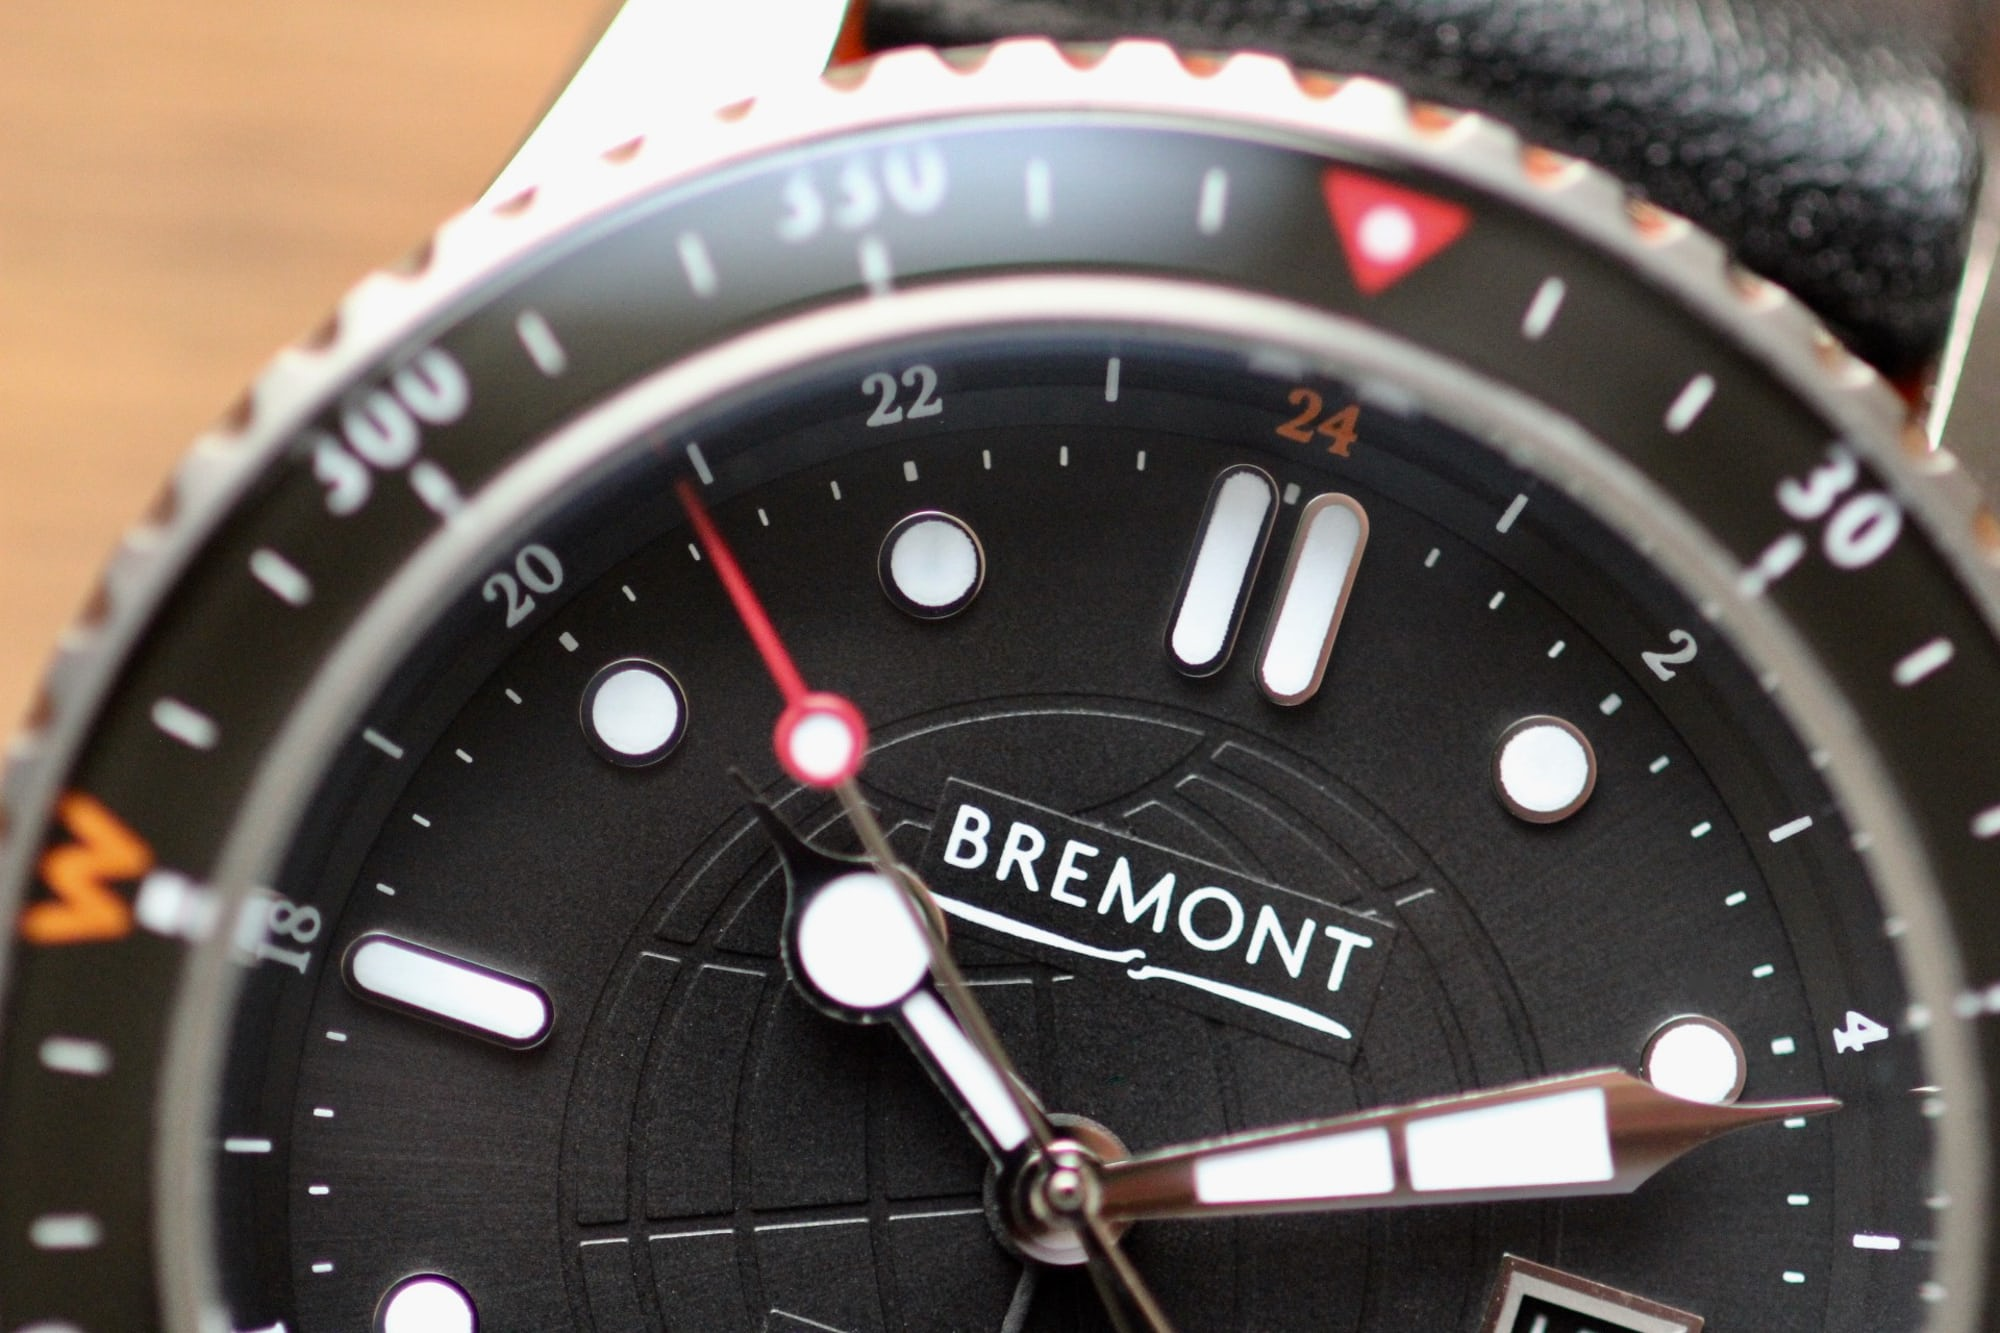 Introducing: The Bremont Endurance Limited Edition (Live Pics & Pricing) Introducing: The Bremont Endurance Limited Edition (Live Pics & Pricing) IMG 9134